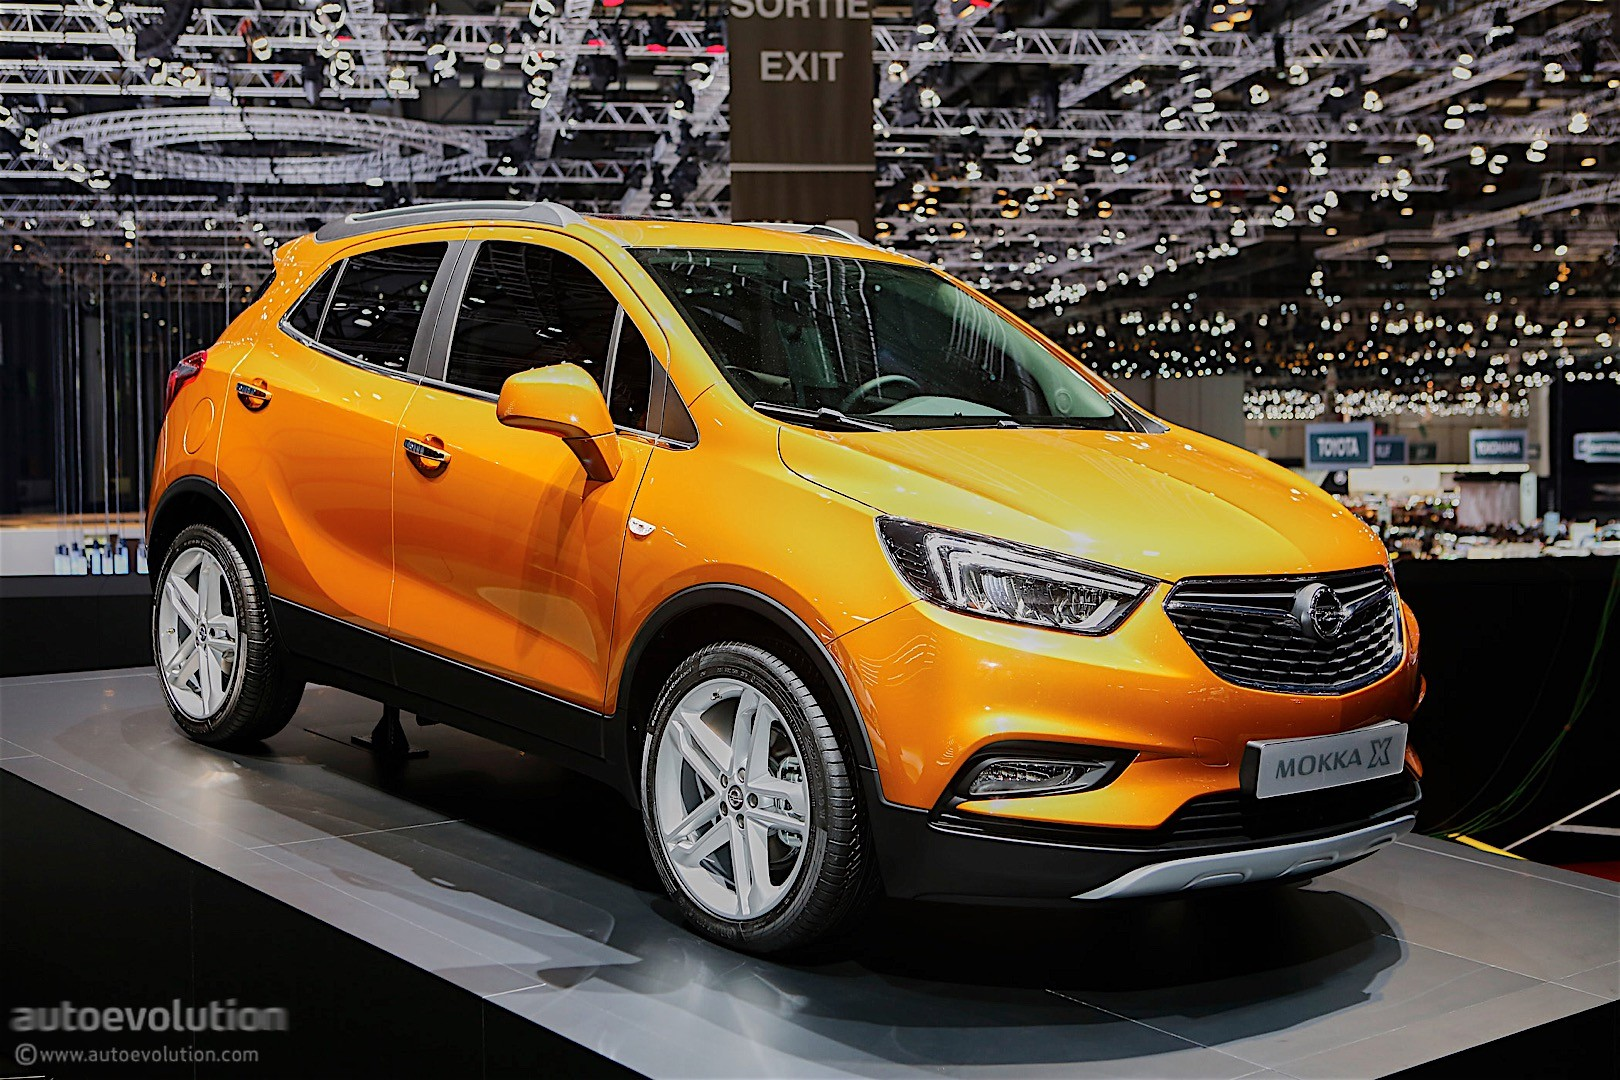 2016 opel mokka x priced in germany from 18 990 autoevolution. Black Bedroom Furniture Sets. Home Design Ideas